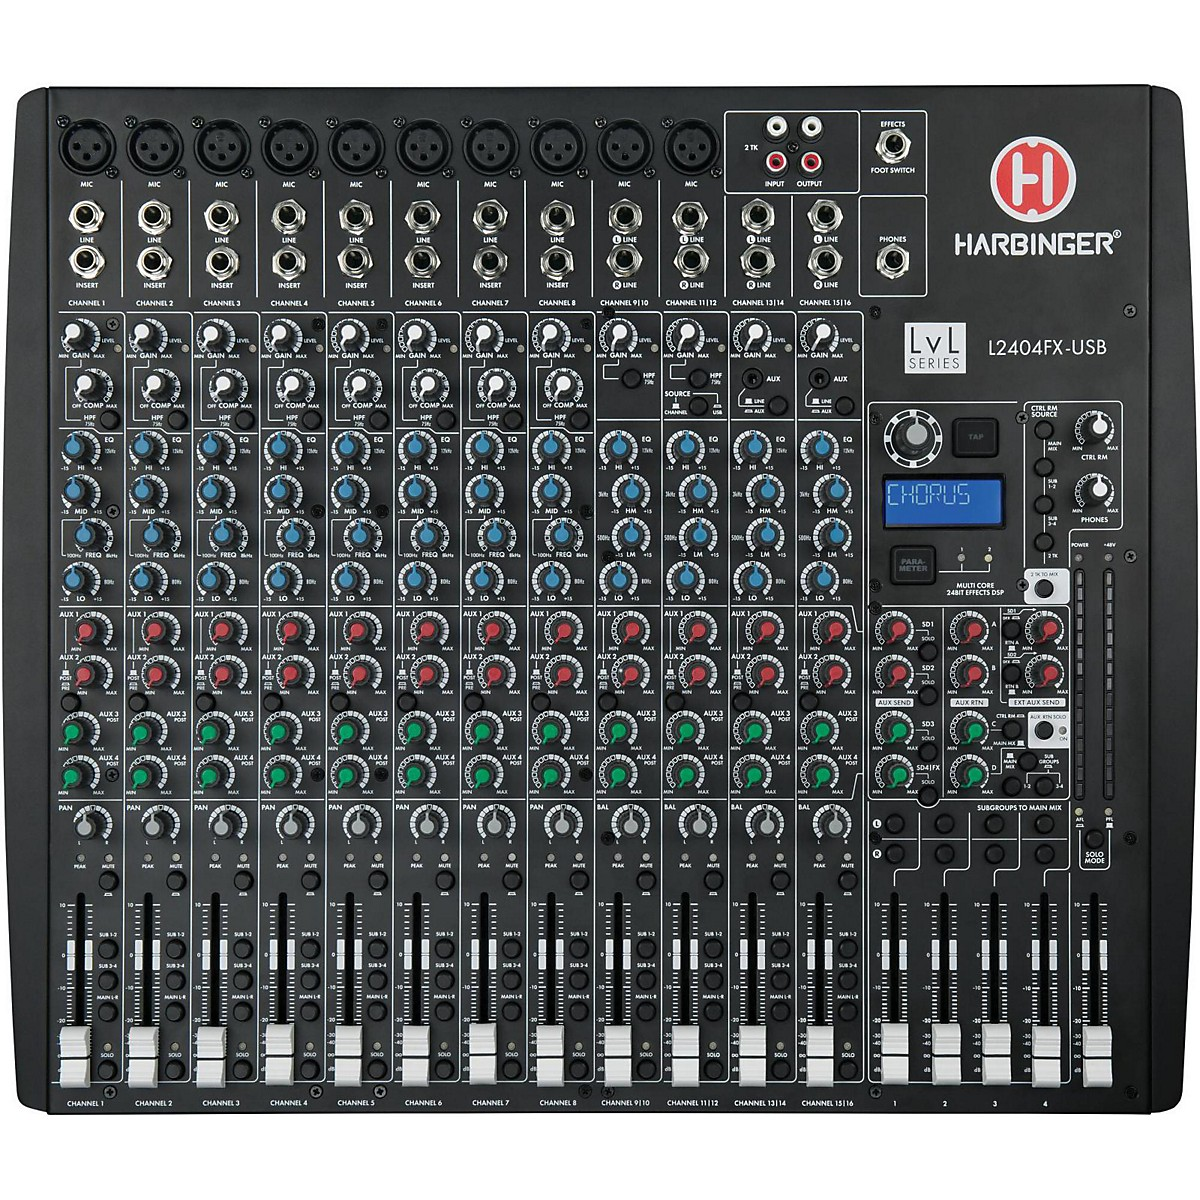 Harbinger L2404FX-USB 24-Channel USB Mixer with Effects